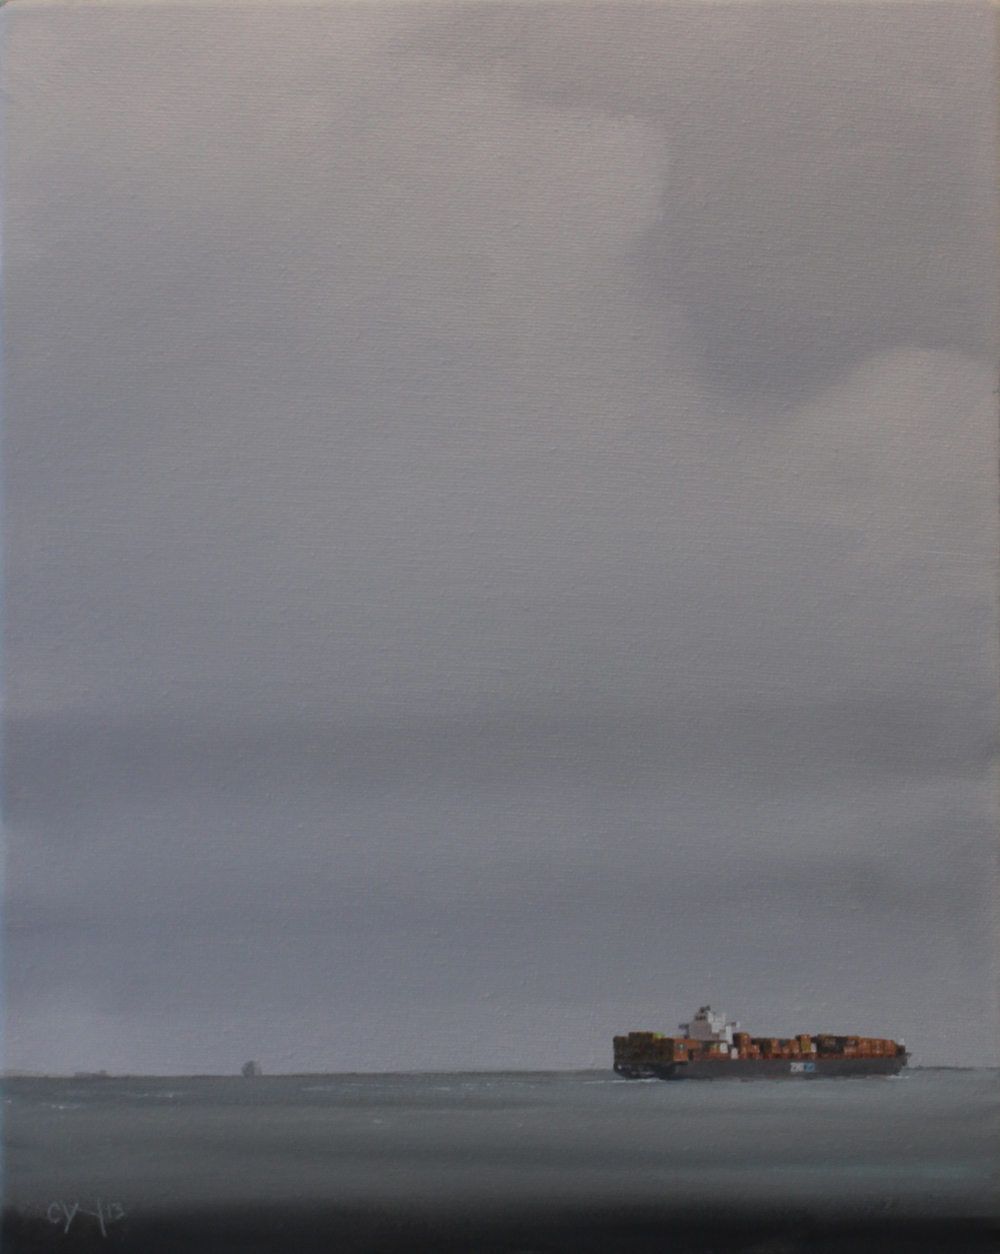 """Halifax Shipping Lane - Zim Mediterranean"" - 11"" x 14"" - Oil on canvas - 2012 : SOLD"